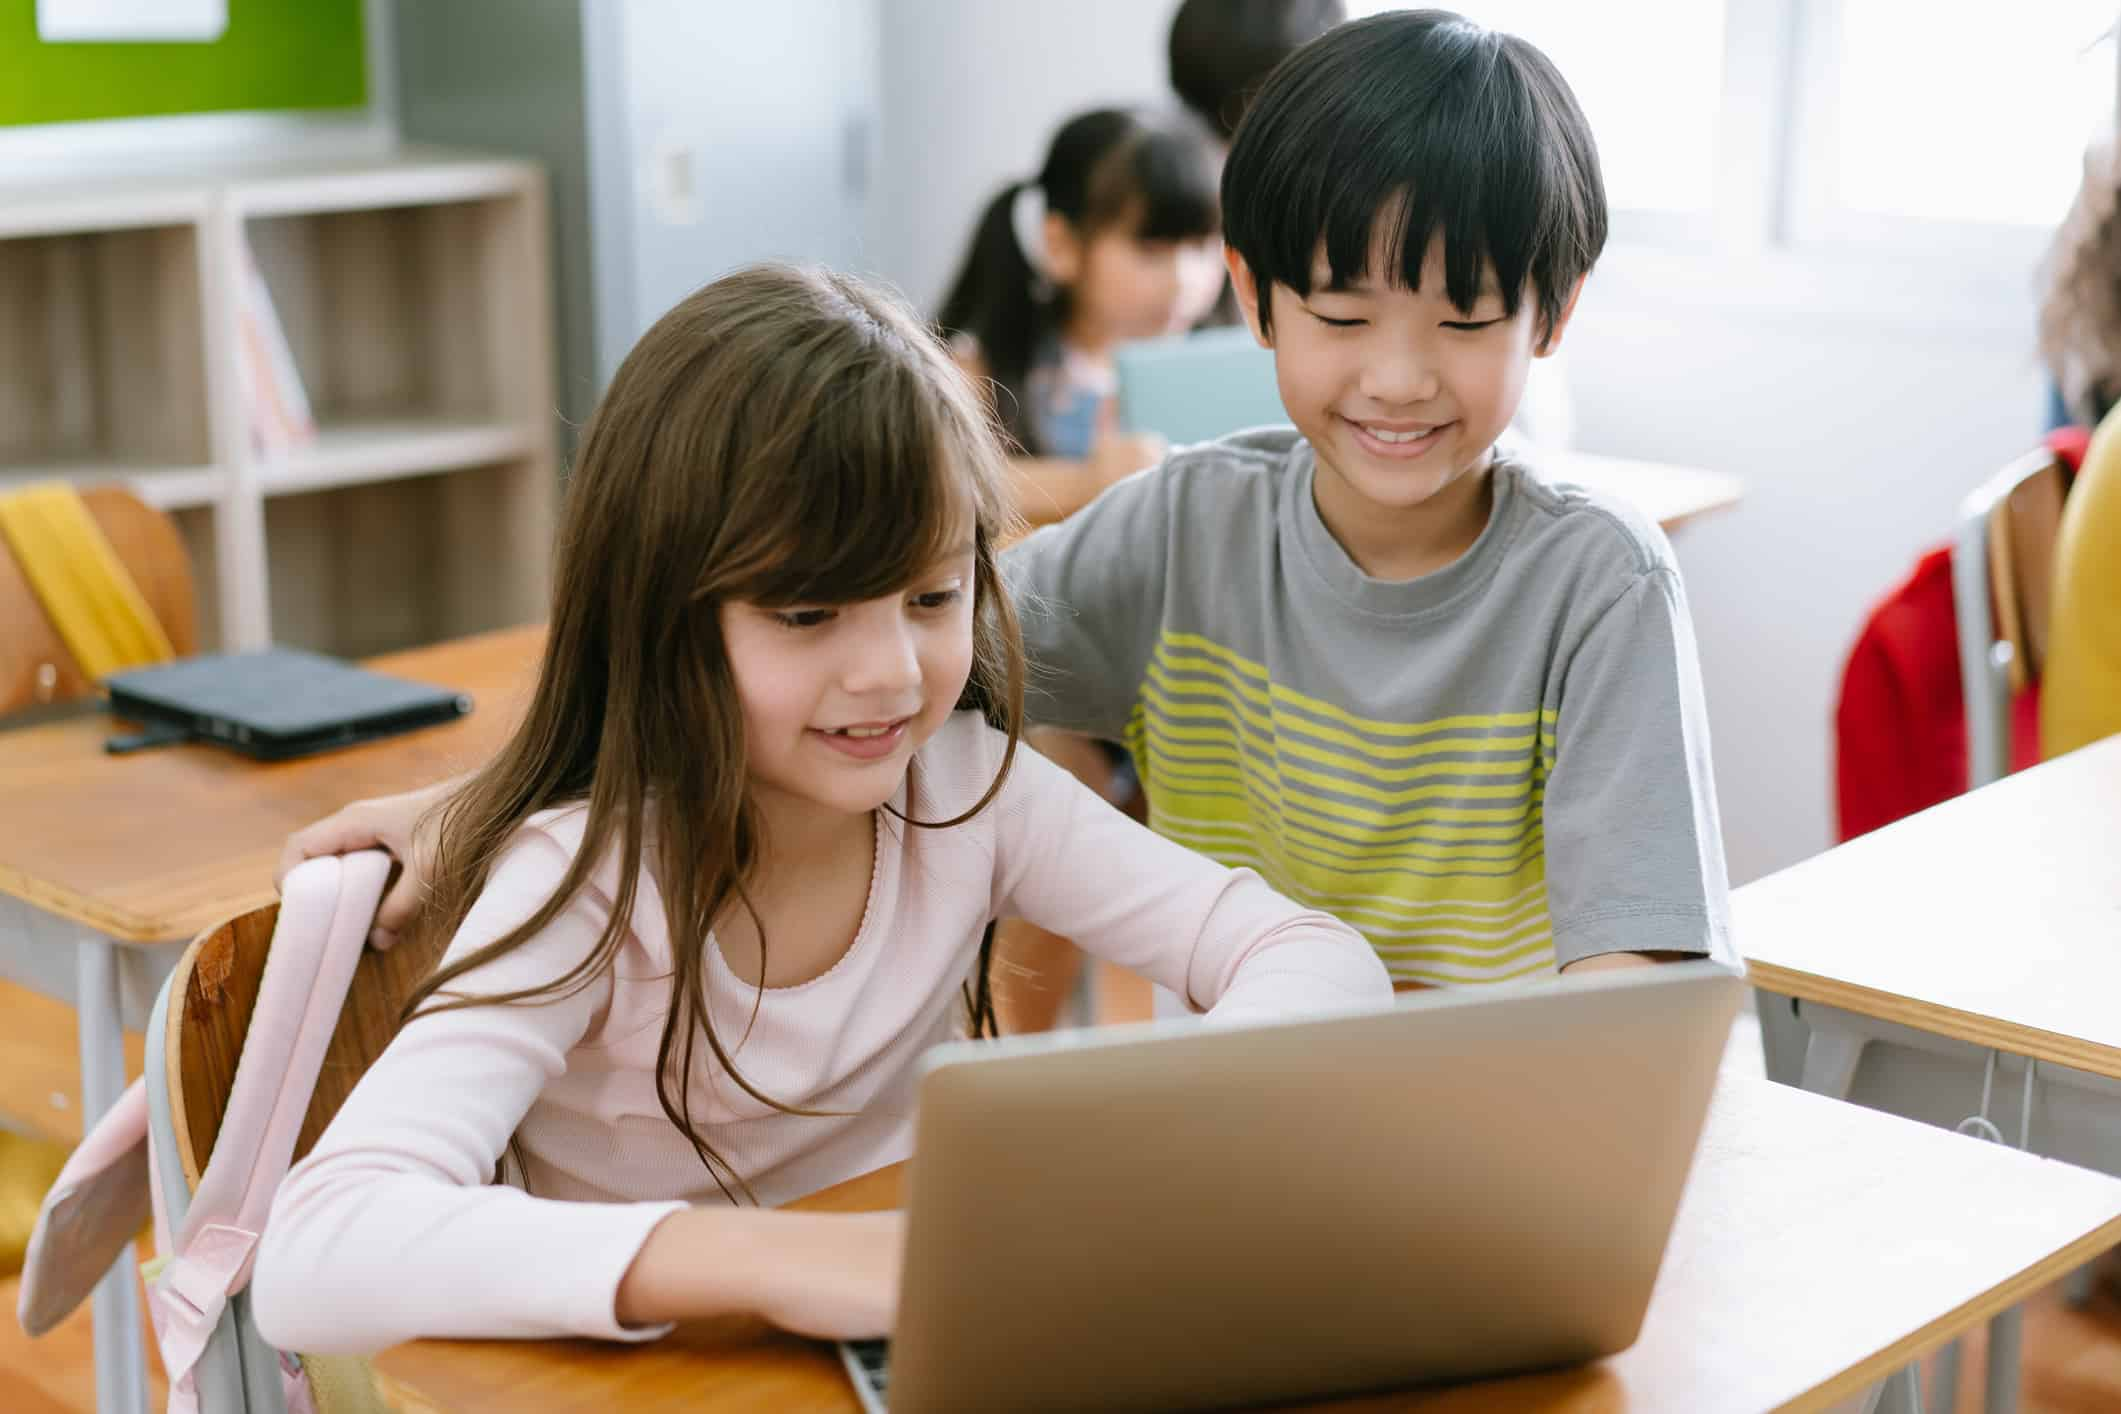 Happy students in classroom using laptop or digital tablet in elementary school class. Education, elementary school, learning, technology and people concept.